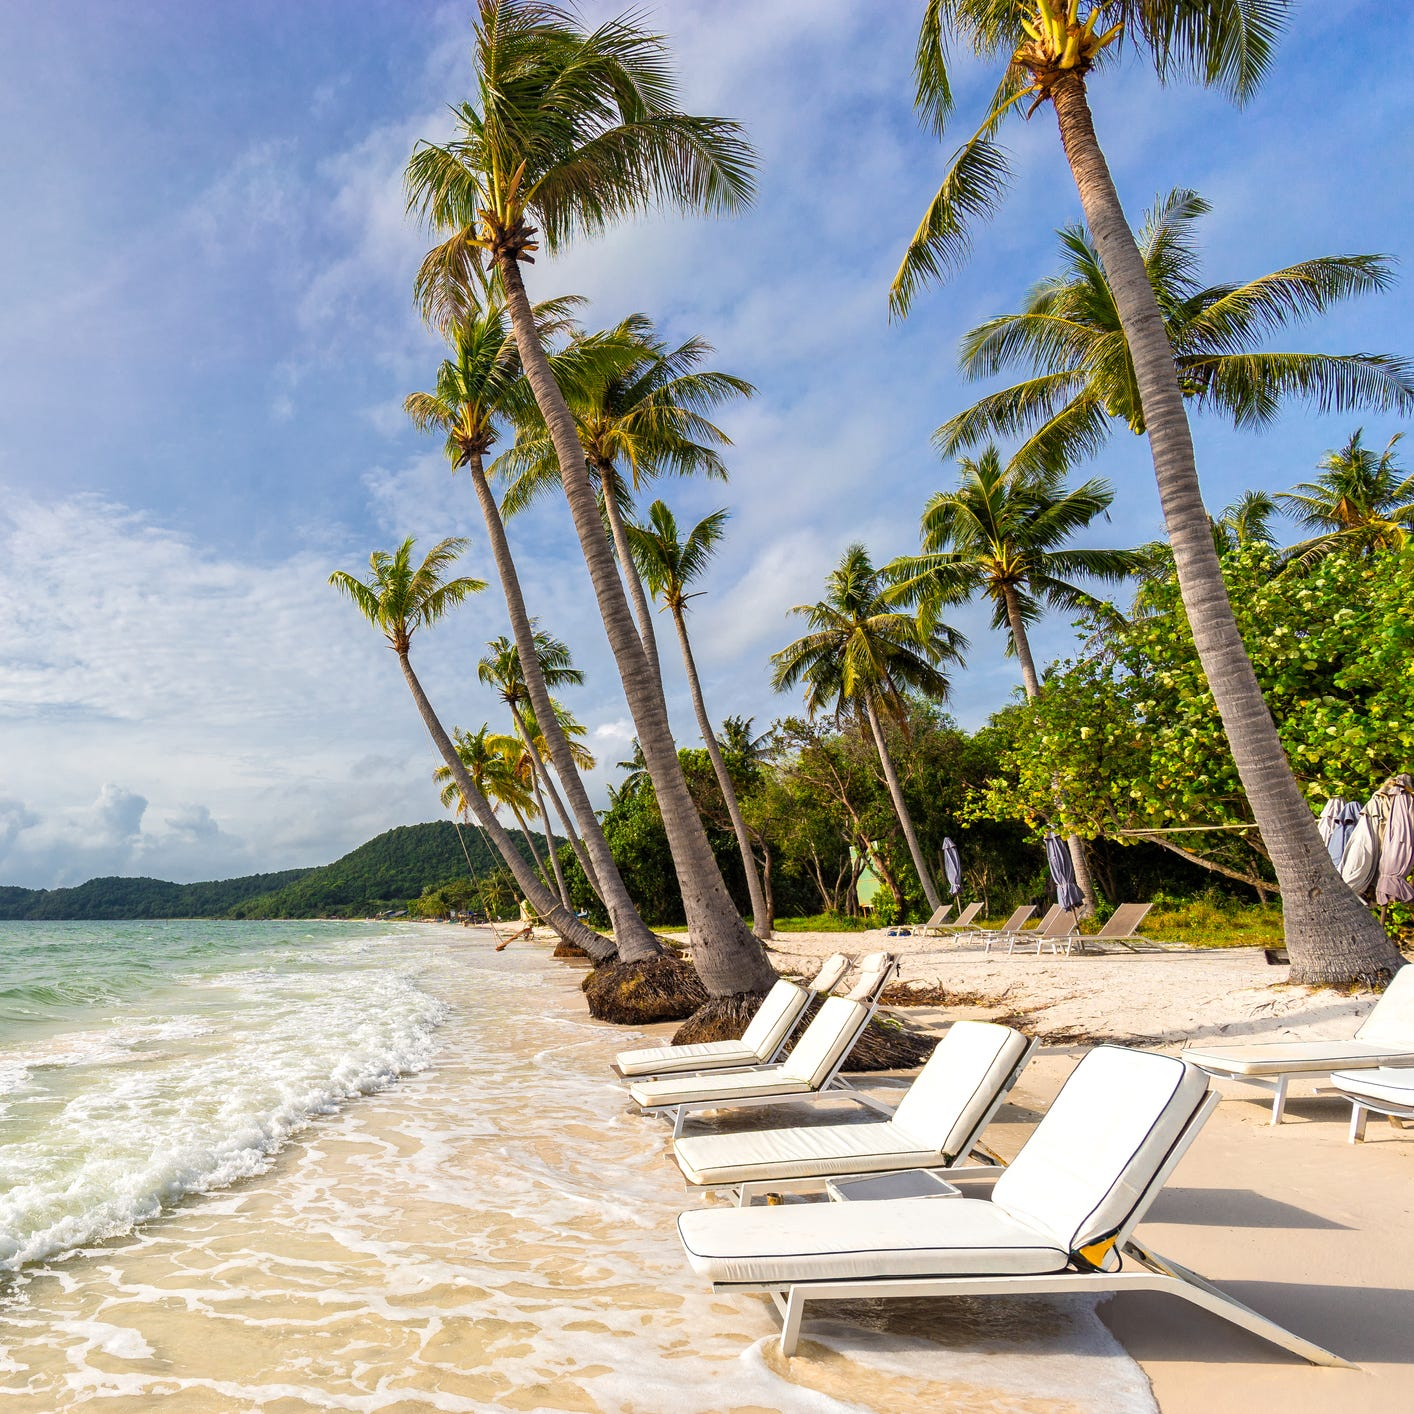 """Phu Quoc Island, Vietnam Accessible via a short and inexpensive flight from Ho Chi Minh City (Saigon), Phu Quoc is a picturesque island paradise. While getting to Southeast Asia isn't """"cheap,"""" it's currently reasonably affordable to fly to Ho Chi Minh City, with round-trip flights hovering around $800 from New York City, Boston, Chicago and Los Angeles. The island is located off the Mekong Delta and still has some untouched beaches and affordable luxury resorts, making this tropical destination a great value getaway. It's also deemed a """"Special Economic Zone"""" so visitors don't need a visa if they're only staying here."""